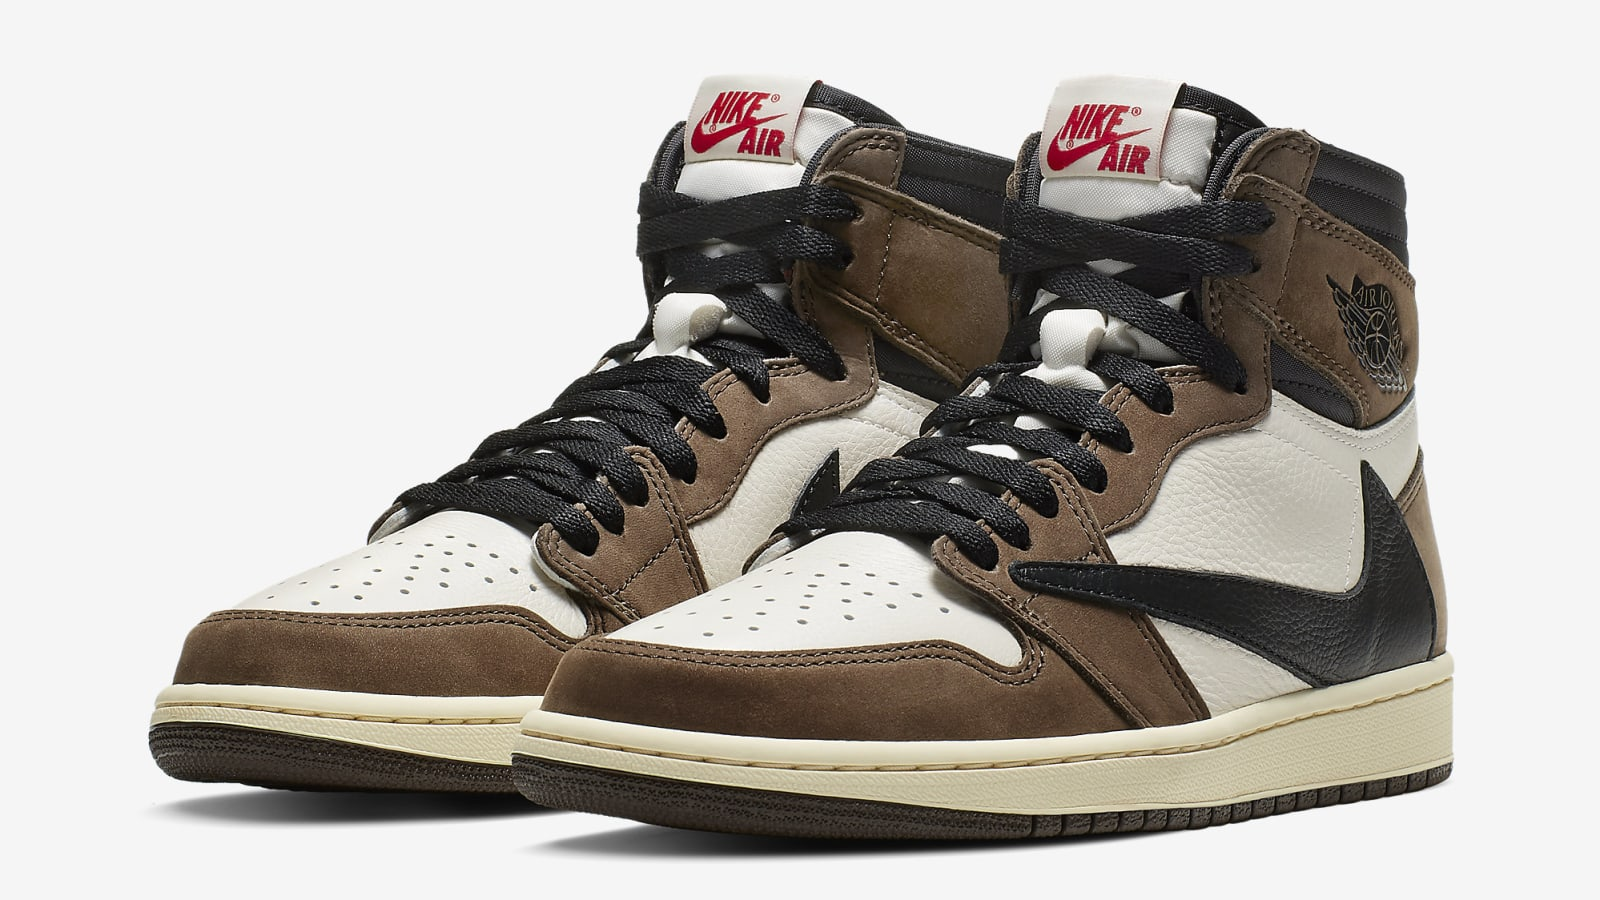 Travis Scott s Air Jordan 1 Collaboration Sold Out in Less Than a Minute e2087b944